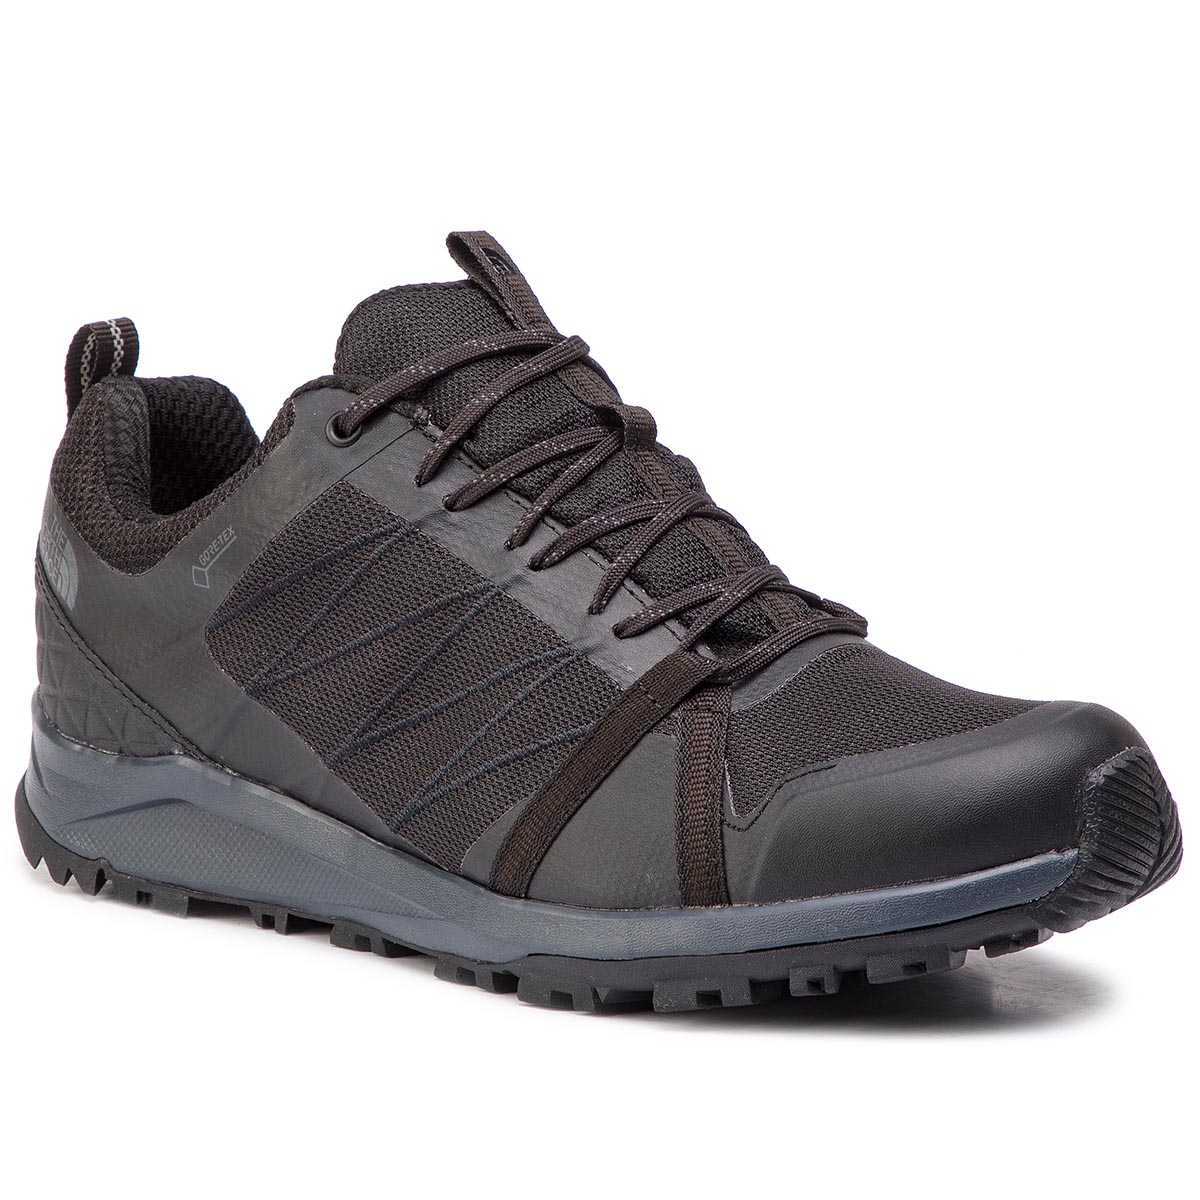 Trekkings The North Face - Litewave Fastpack Ii Gtx Gore-Tex T93redca0 Tnf Black/Ebony Grey imagine epantofi.ro 2021